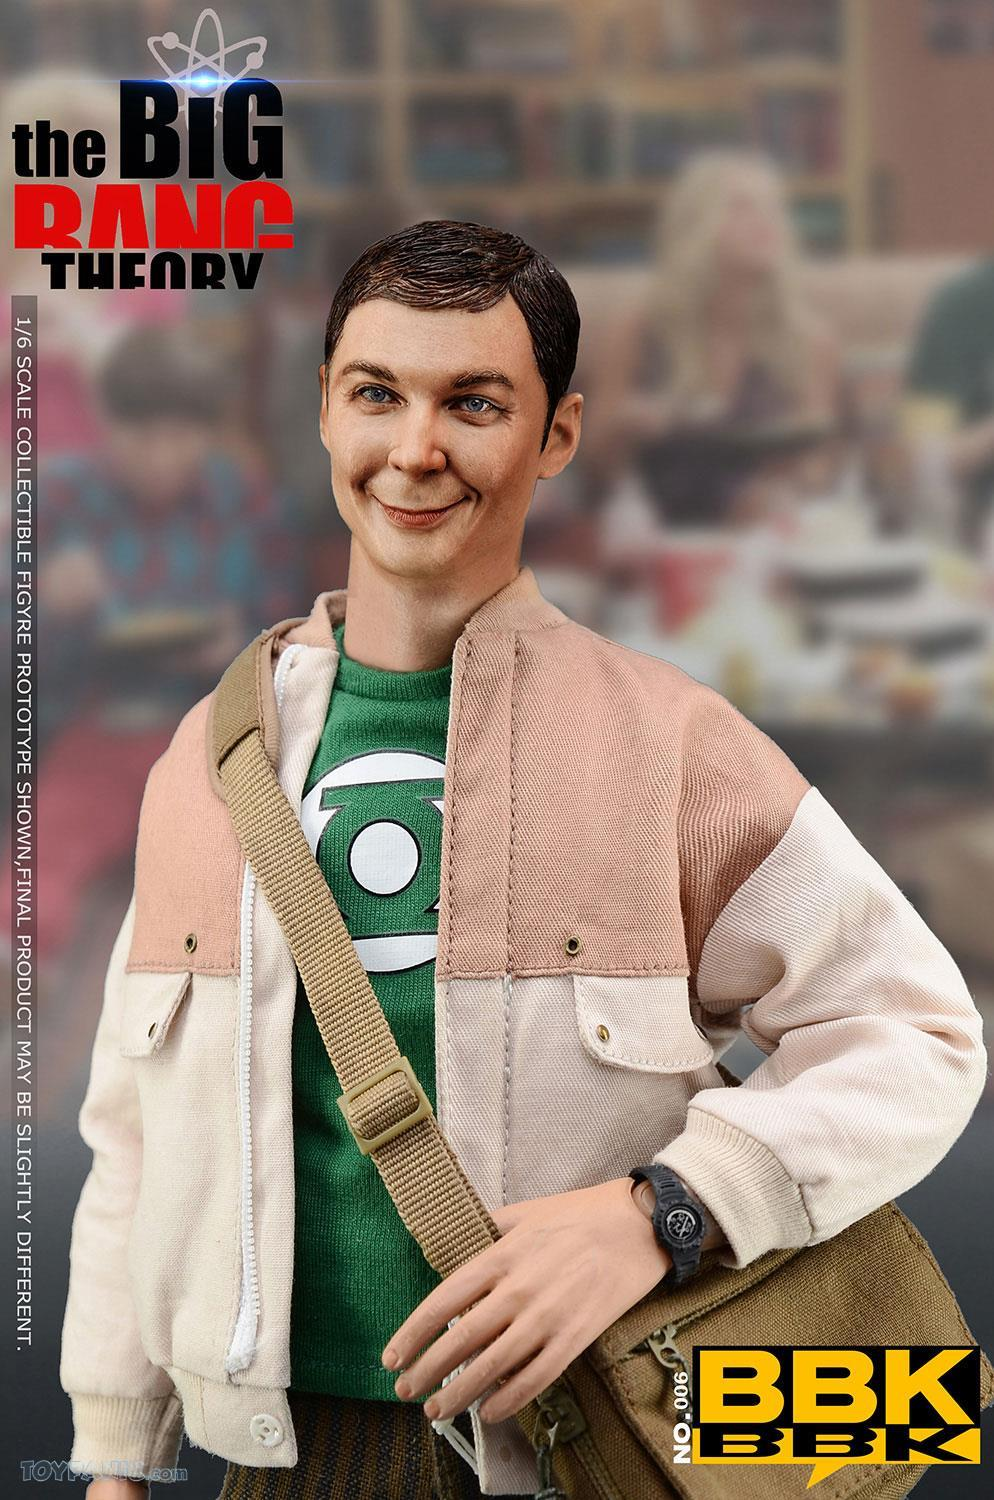 bbk - NEW PRODUCT: BBK: 1/6 scale The Big Bang Theory Sheldon Cooper Action Figure (BBK06) 49201915